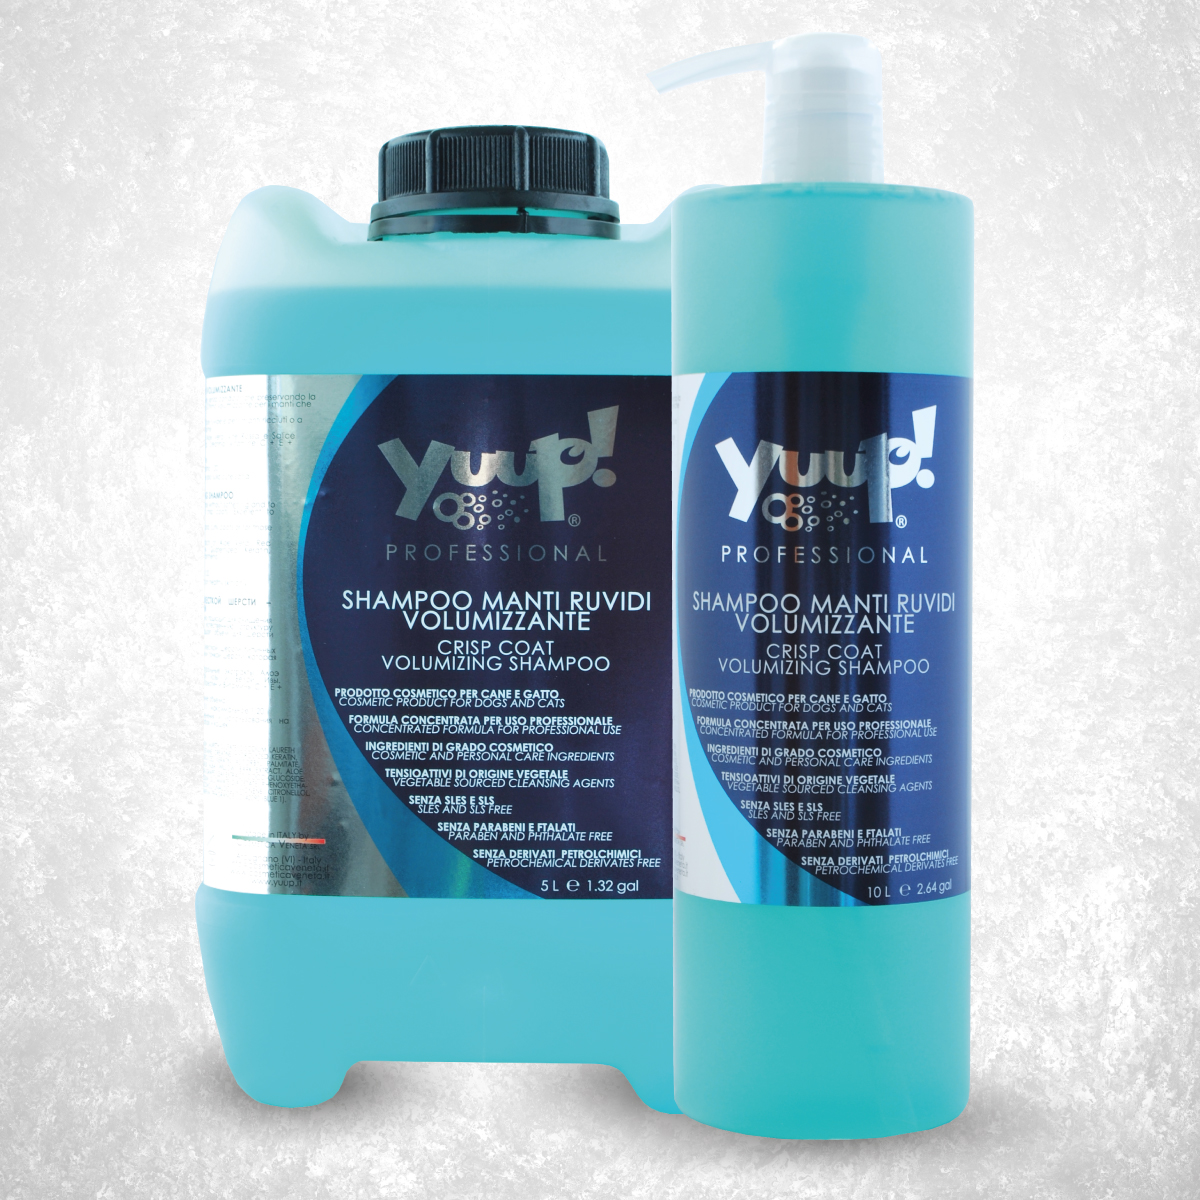 Yuup Crisp Coat Volumizing Shampoo